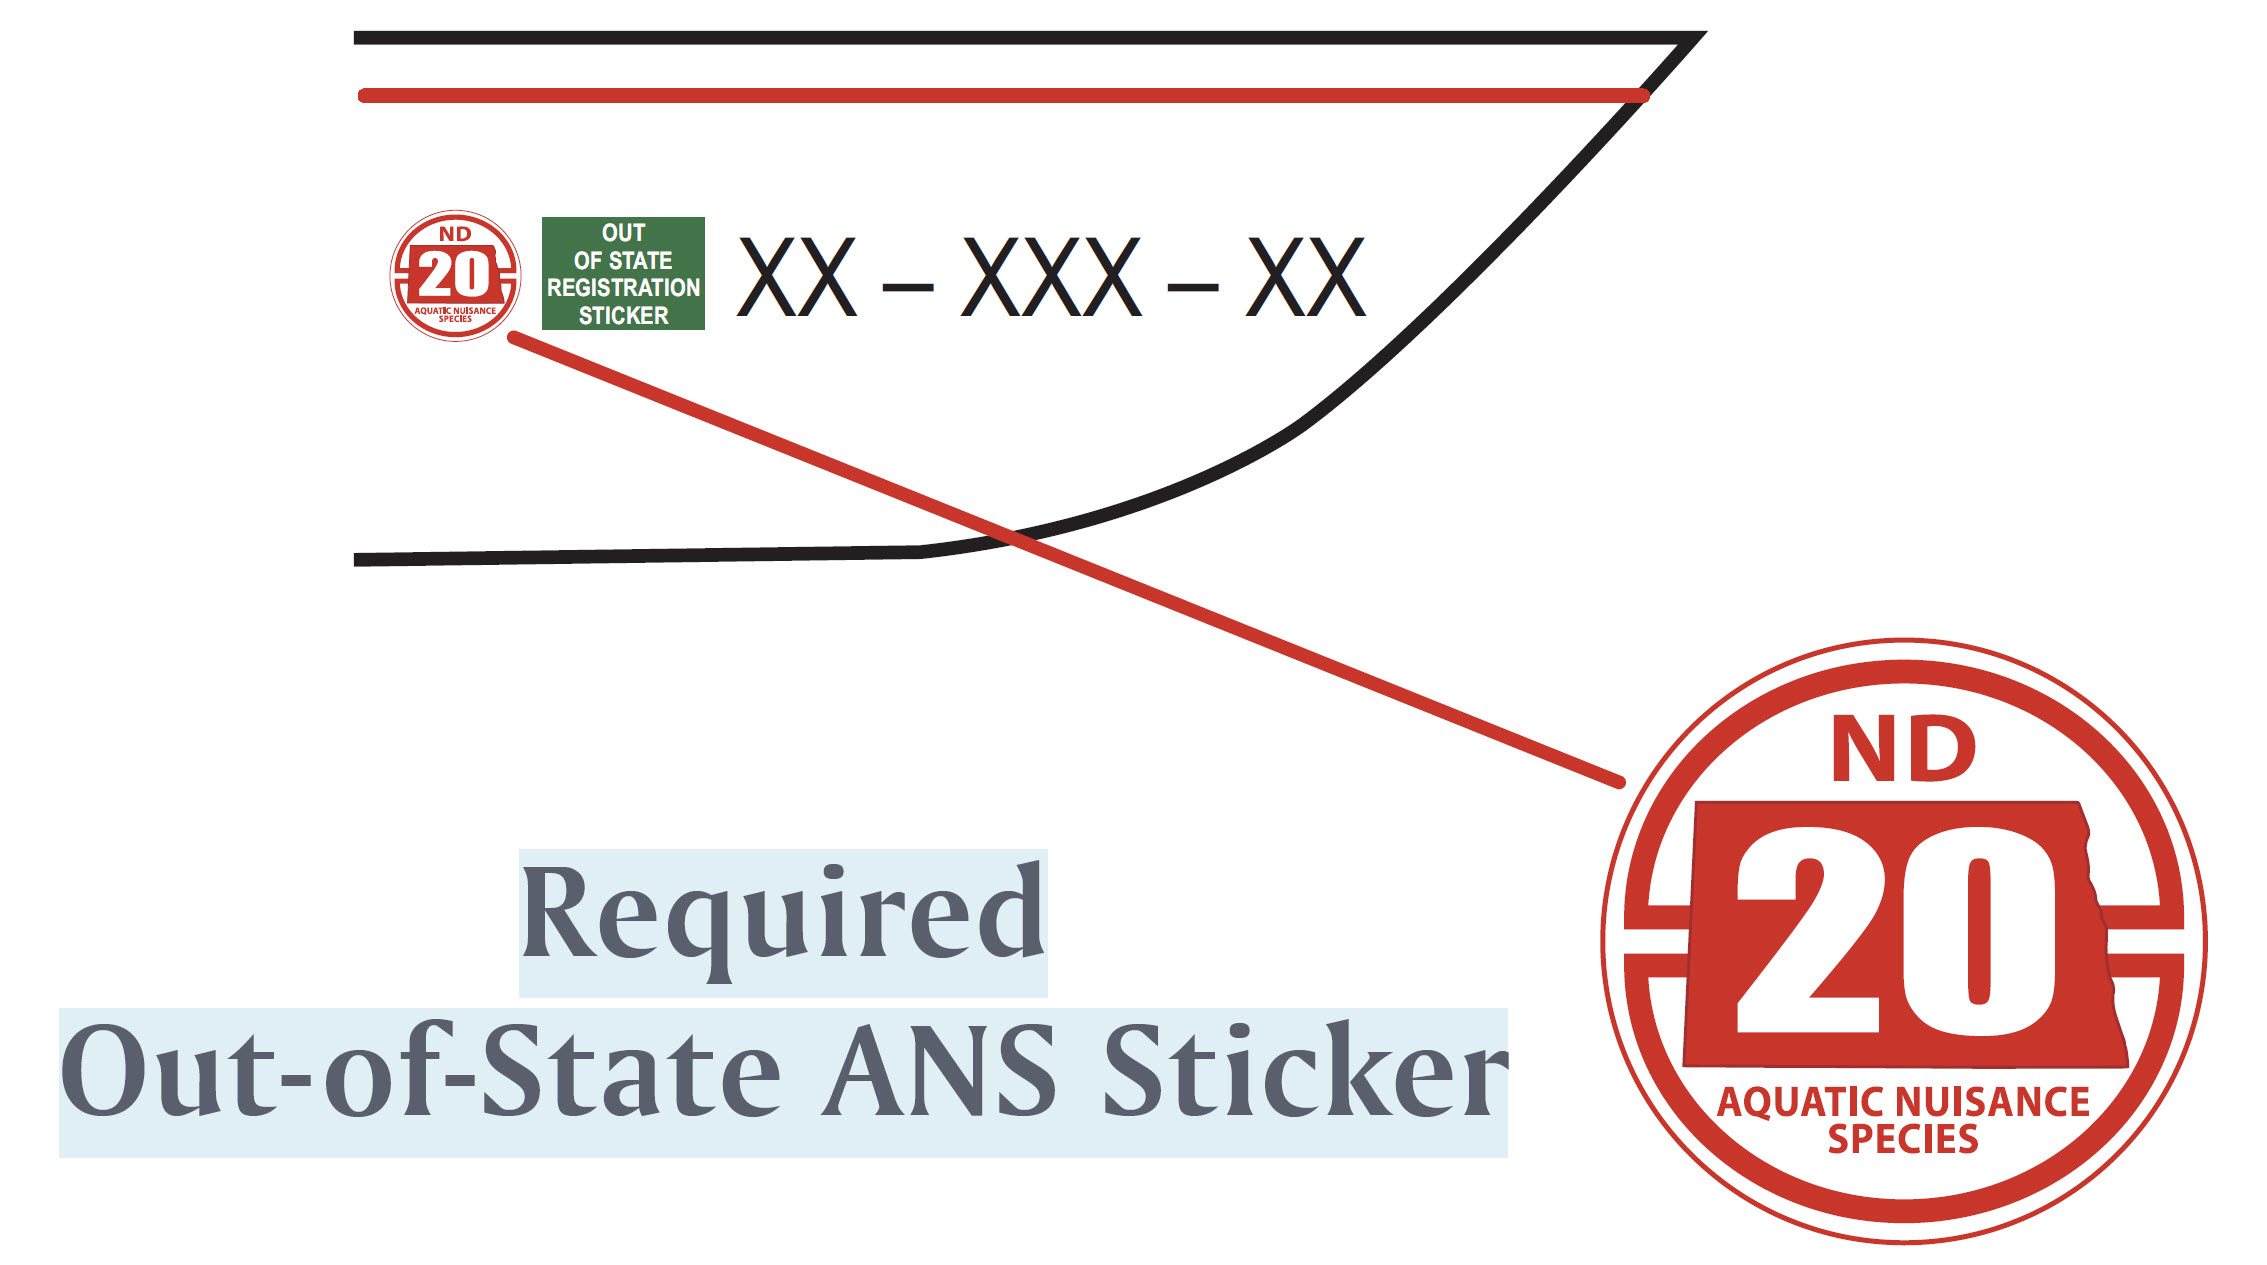 Graphic showing where to attach the ANS sticker for out-of-state boats